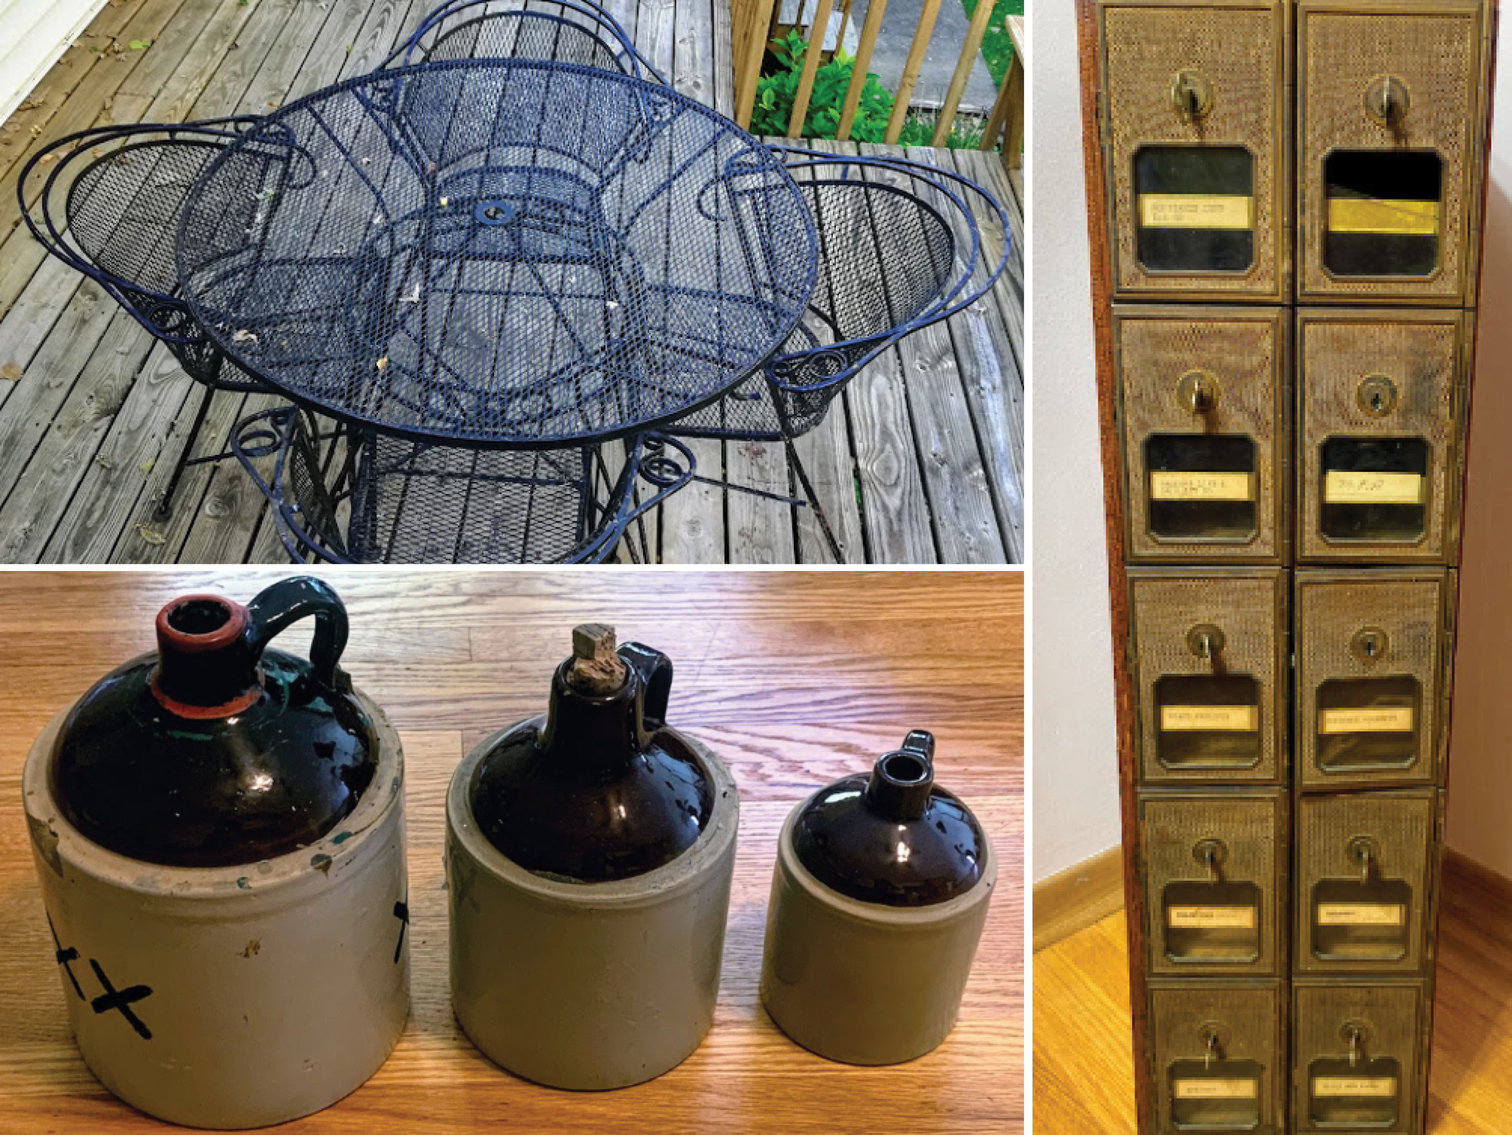 Personal Property Liquidation: Household Goods, Collectibles, Furniture, and Tools